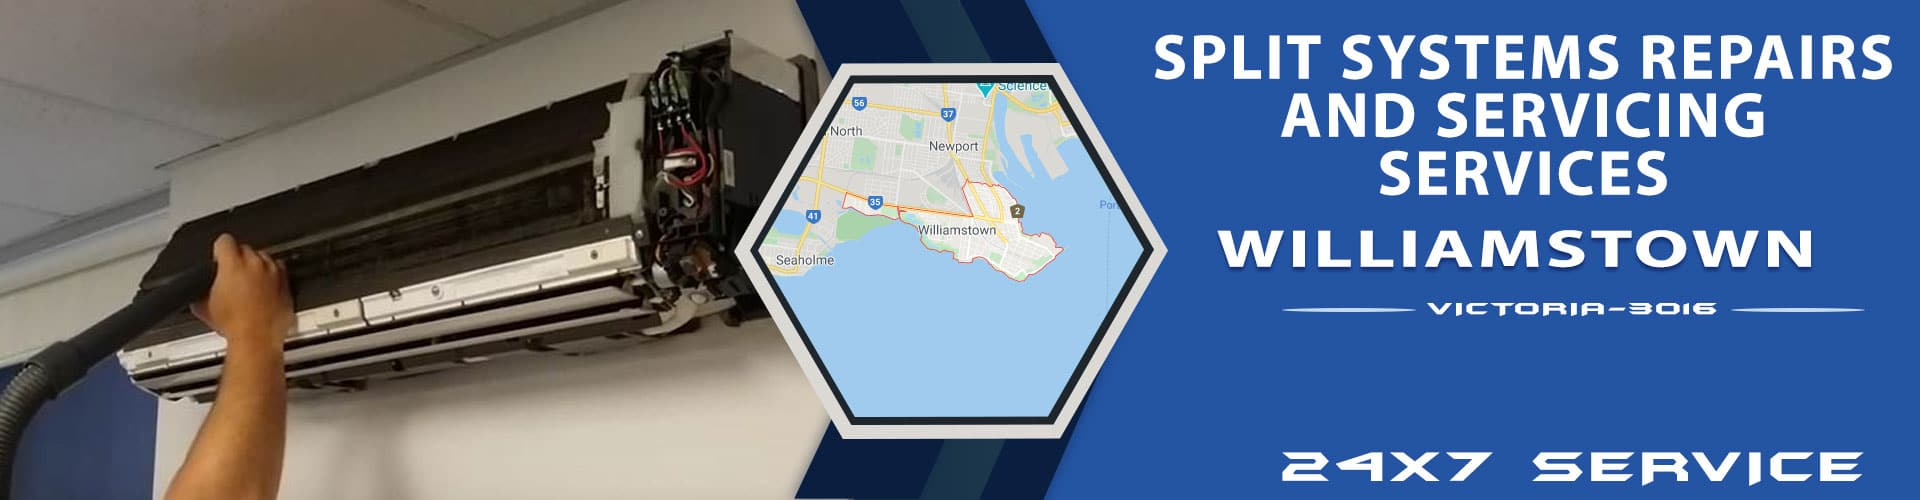 Split Systems Repairs and Servicing Williamstown